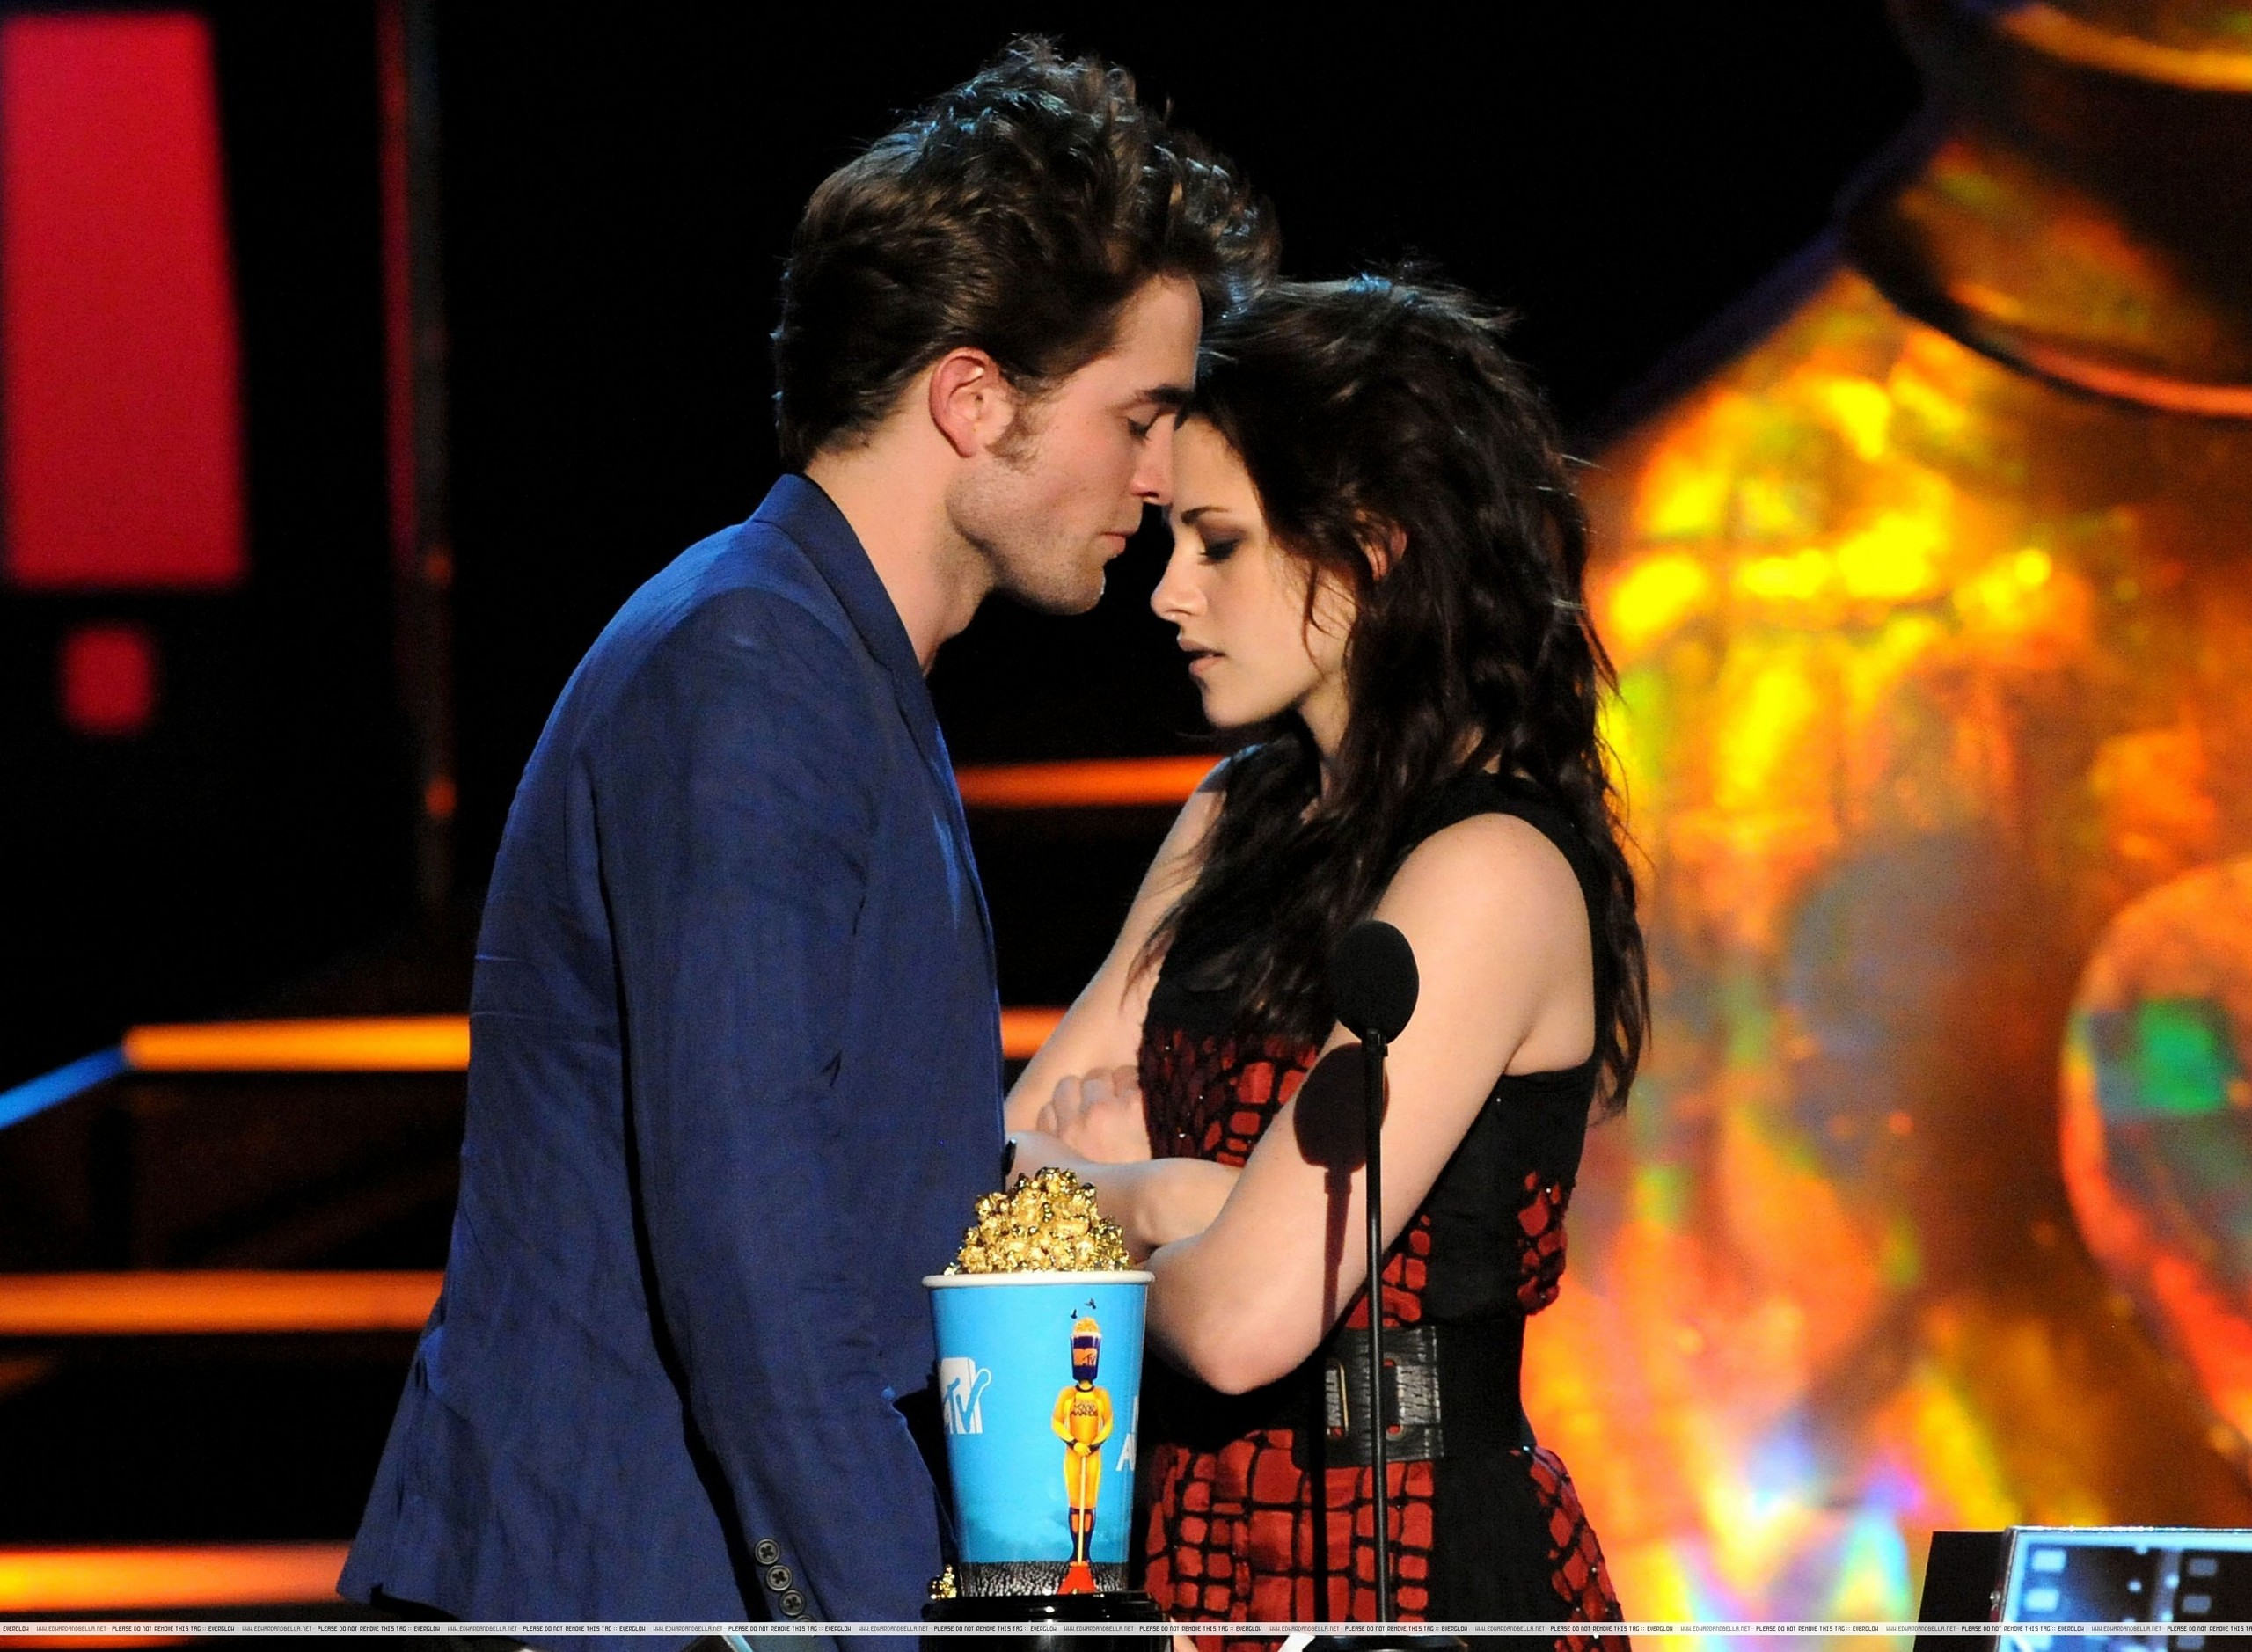 http://images2.fanpop.com/images/photos/6400000/mtv-movie-awards-twilight-series-6494270-2560-1878.jpg